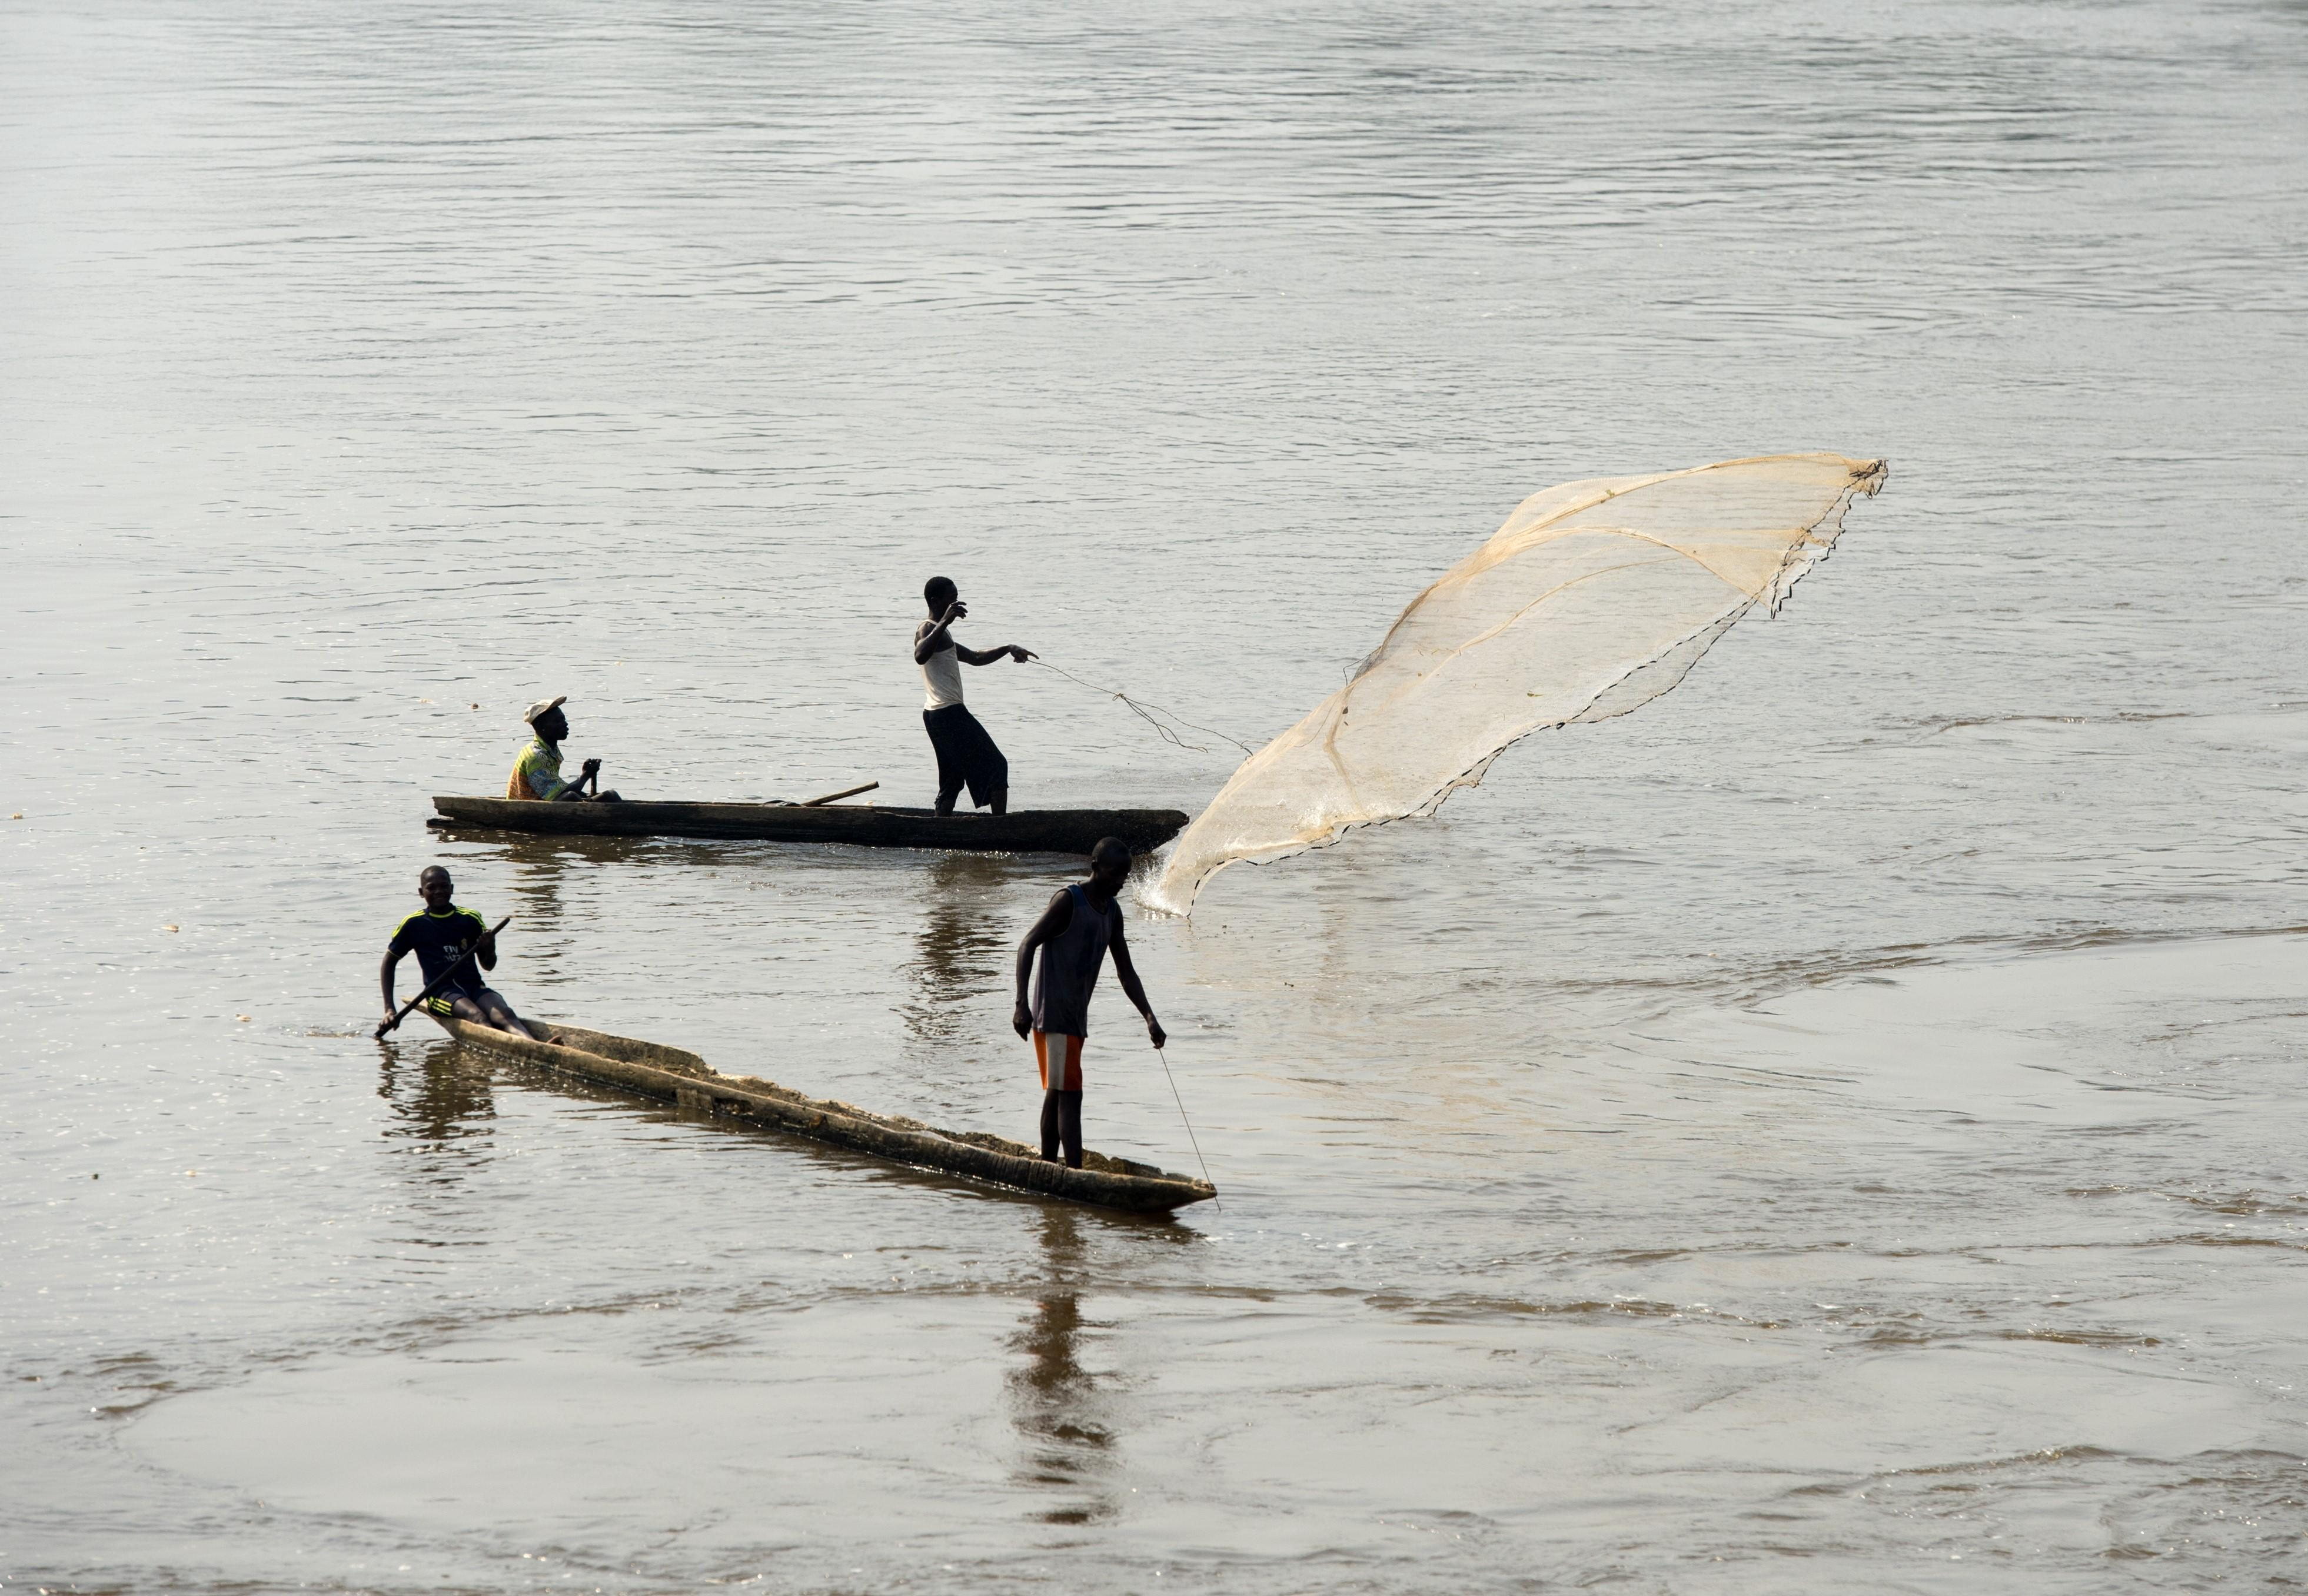 Hundreds of people cross the M'poko River in Central African Republic every day